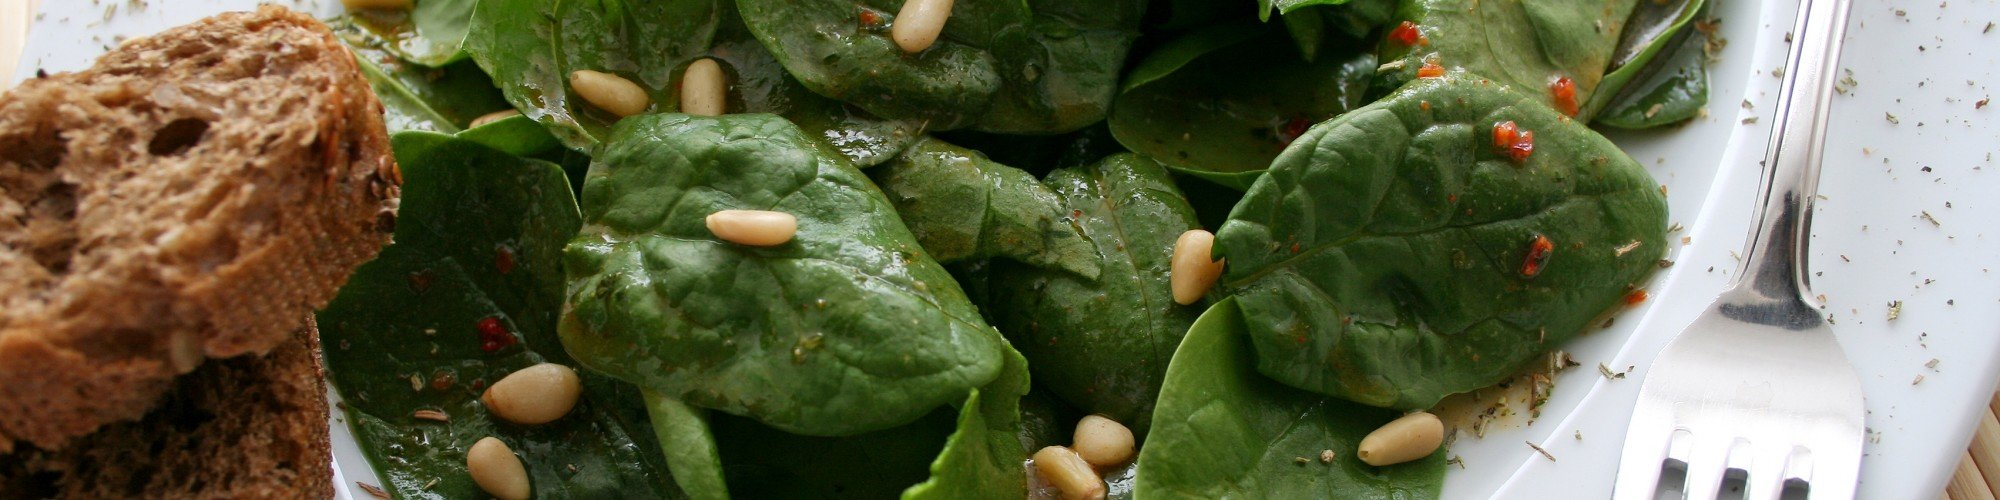 Spinach and Basil Salad with Pine Nut Dressing Recipe by Vicki Barrett